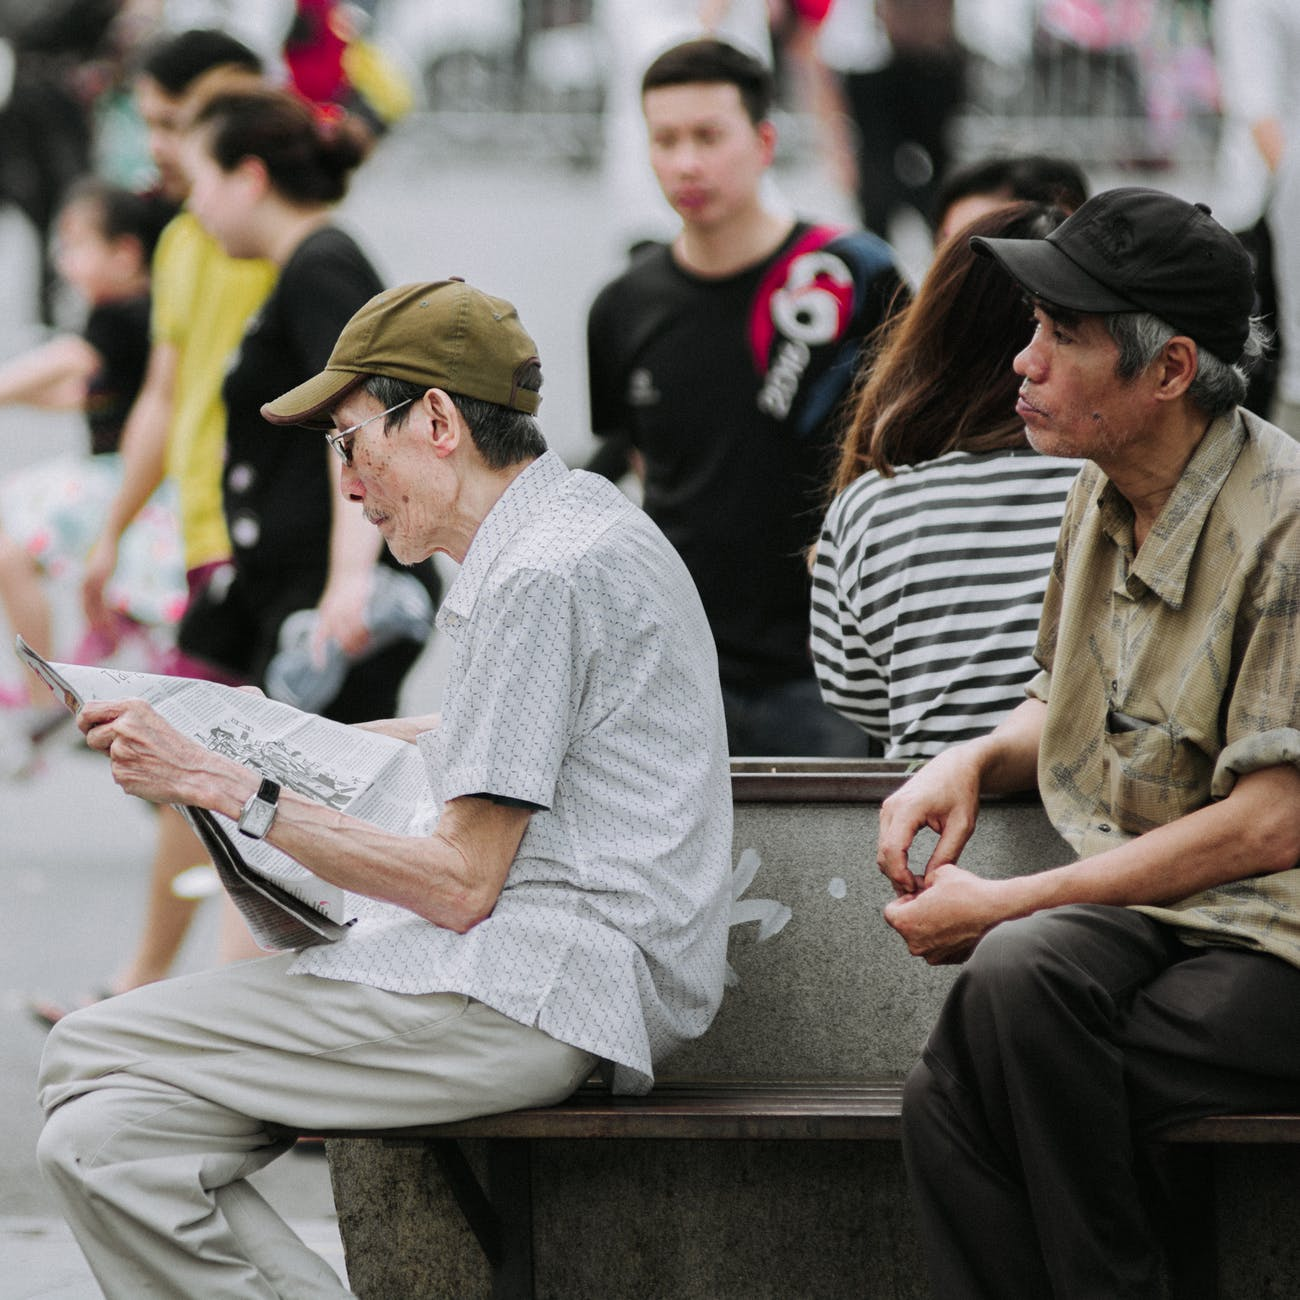 old man reading the newspaper in a crowded area